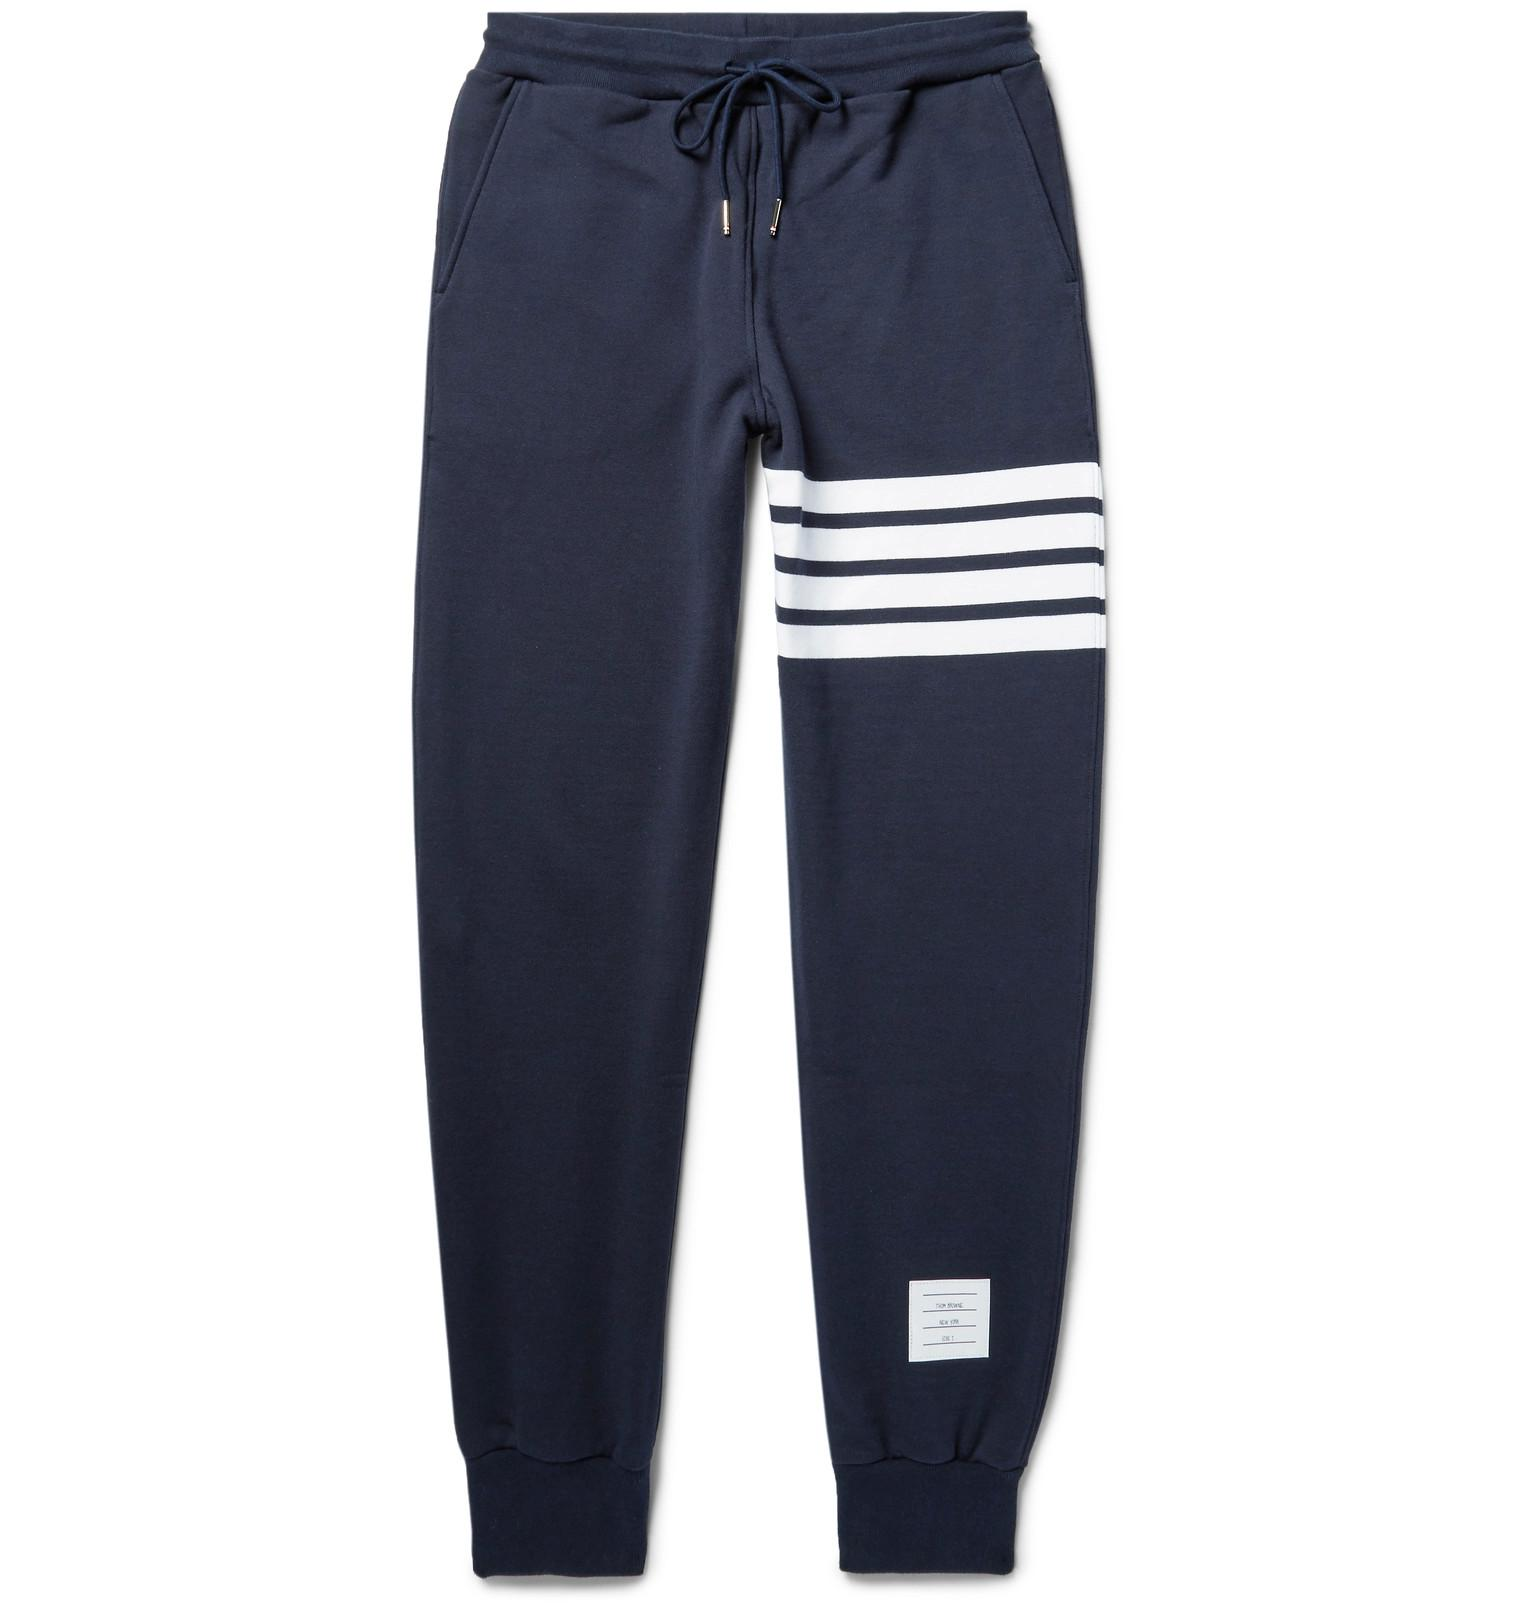 How Much CROWN PRINT COTTON JERSEY SWEATPANTS Pay With Paypal Manchester Great Sale Buy Cheap Wholesale Price Buy Cheap Footlocker XmWe9iA